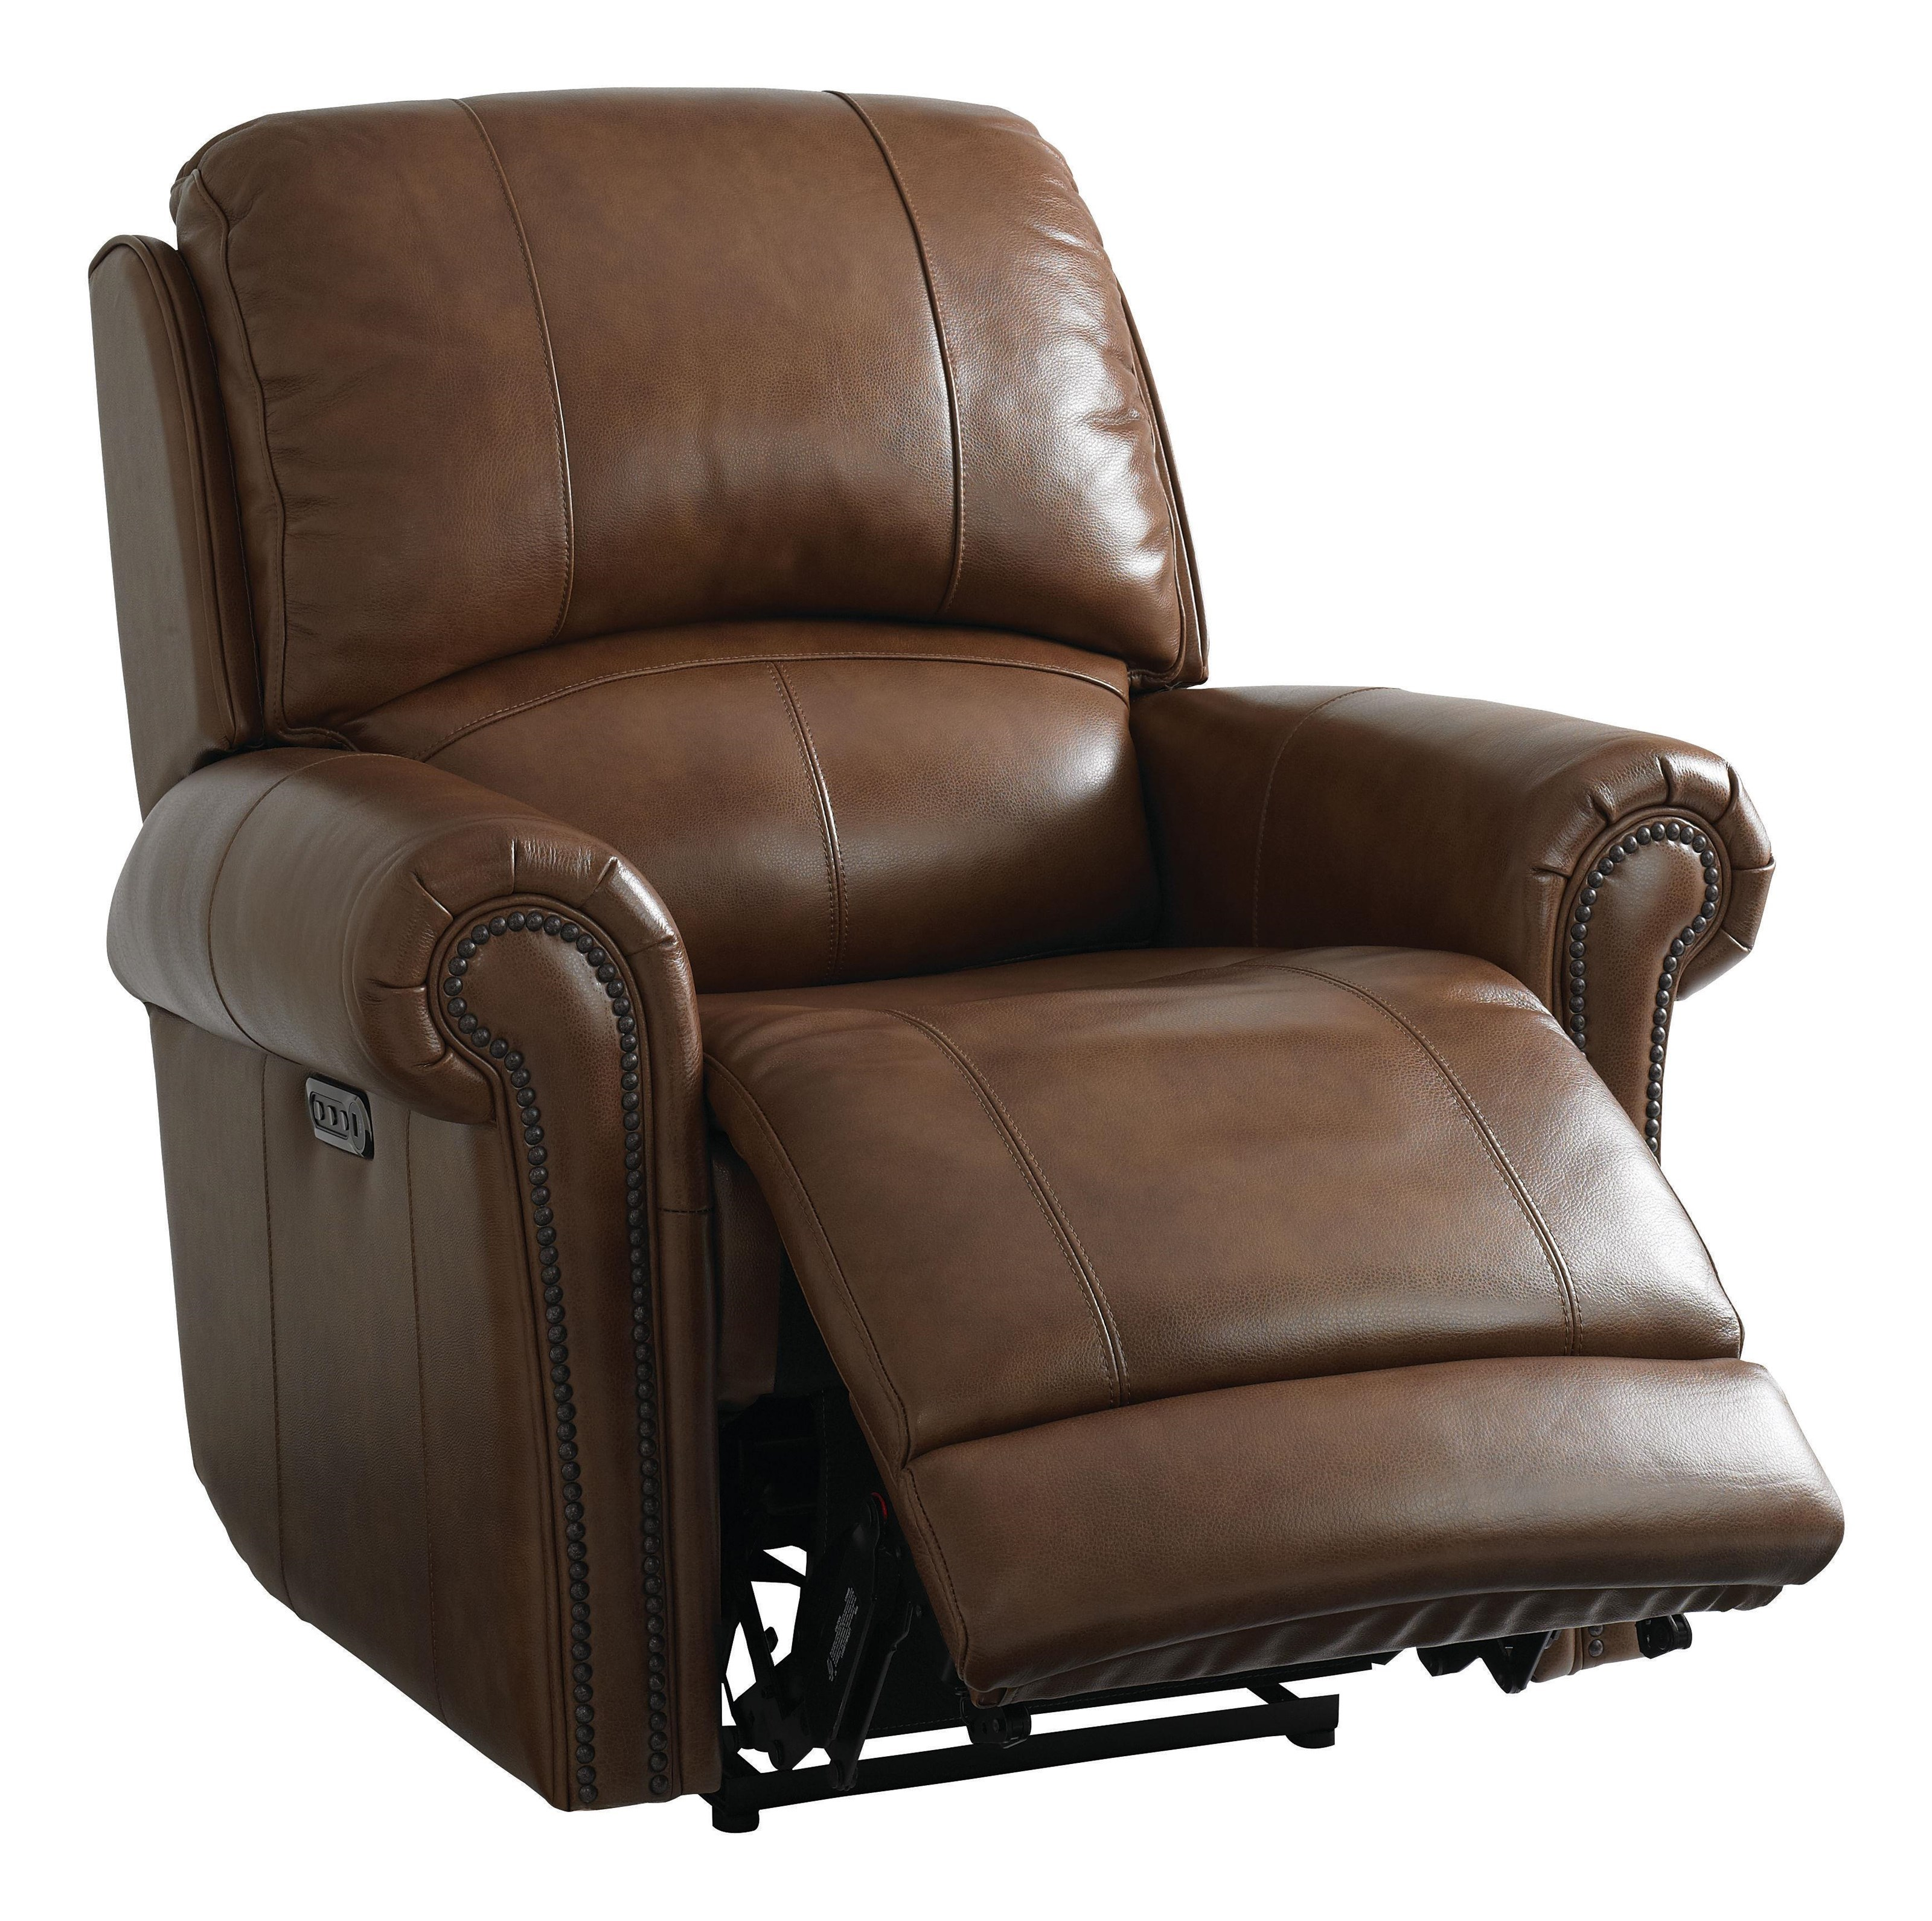 Bassett Club Level Recliner Olsen Power Leather Recliner W/ Head, Foot, &  Lumbar